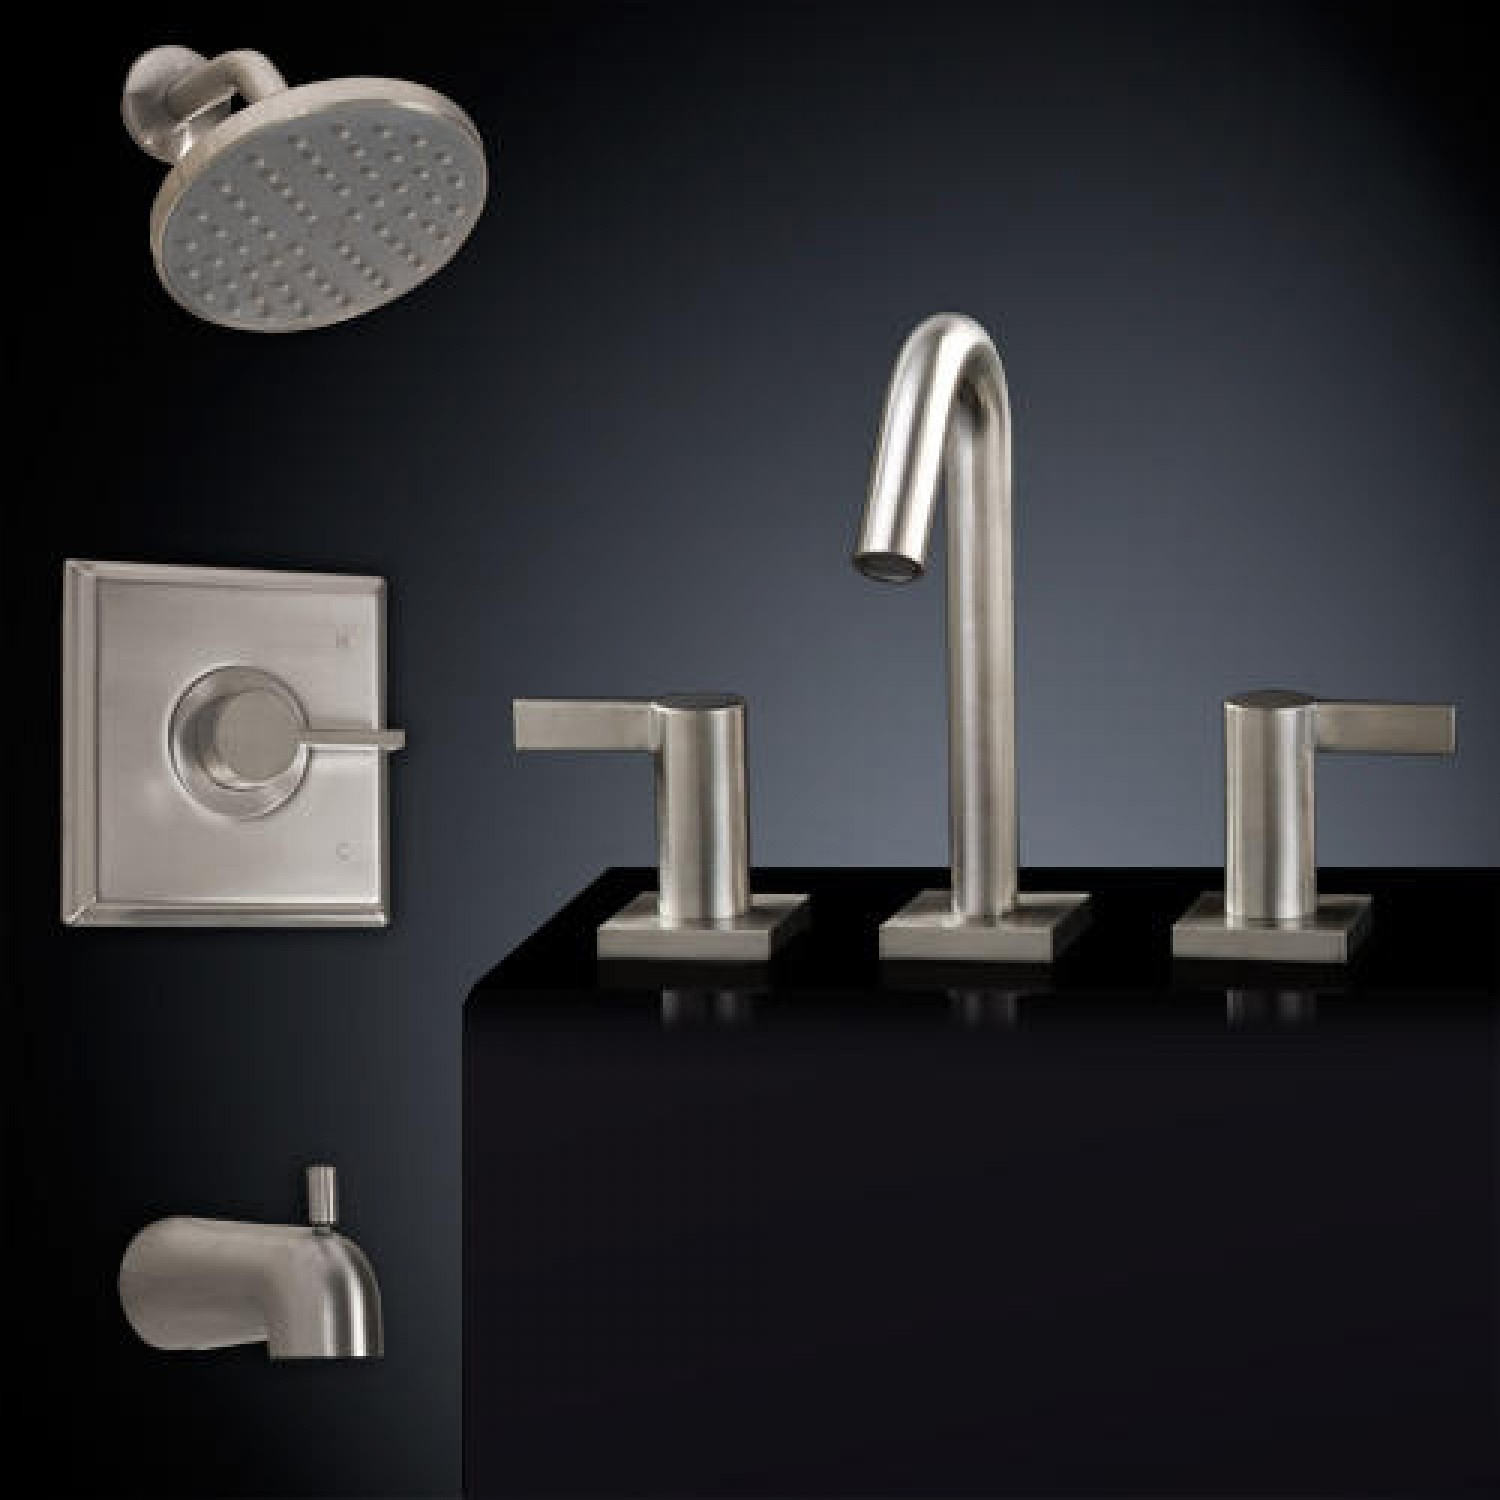 bathroom sink and faucet sets bathroom sink and faucet sets flair tub shower set 2 with widespread sink faucet bathroom 1500 x 1500